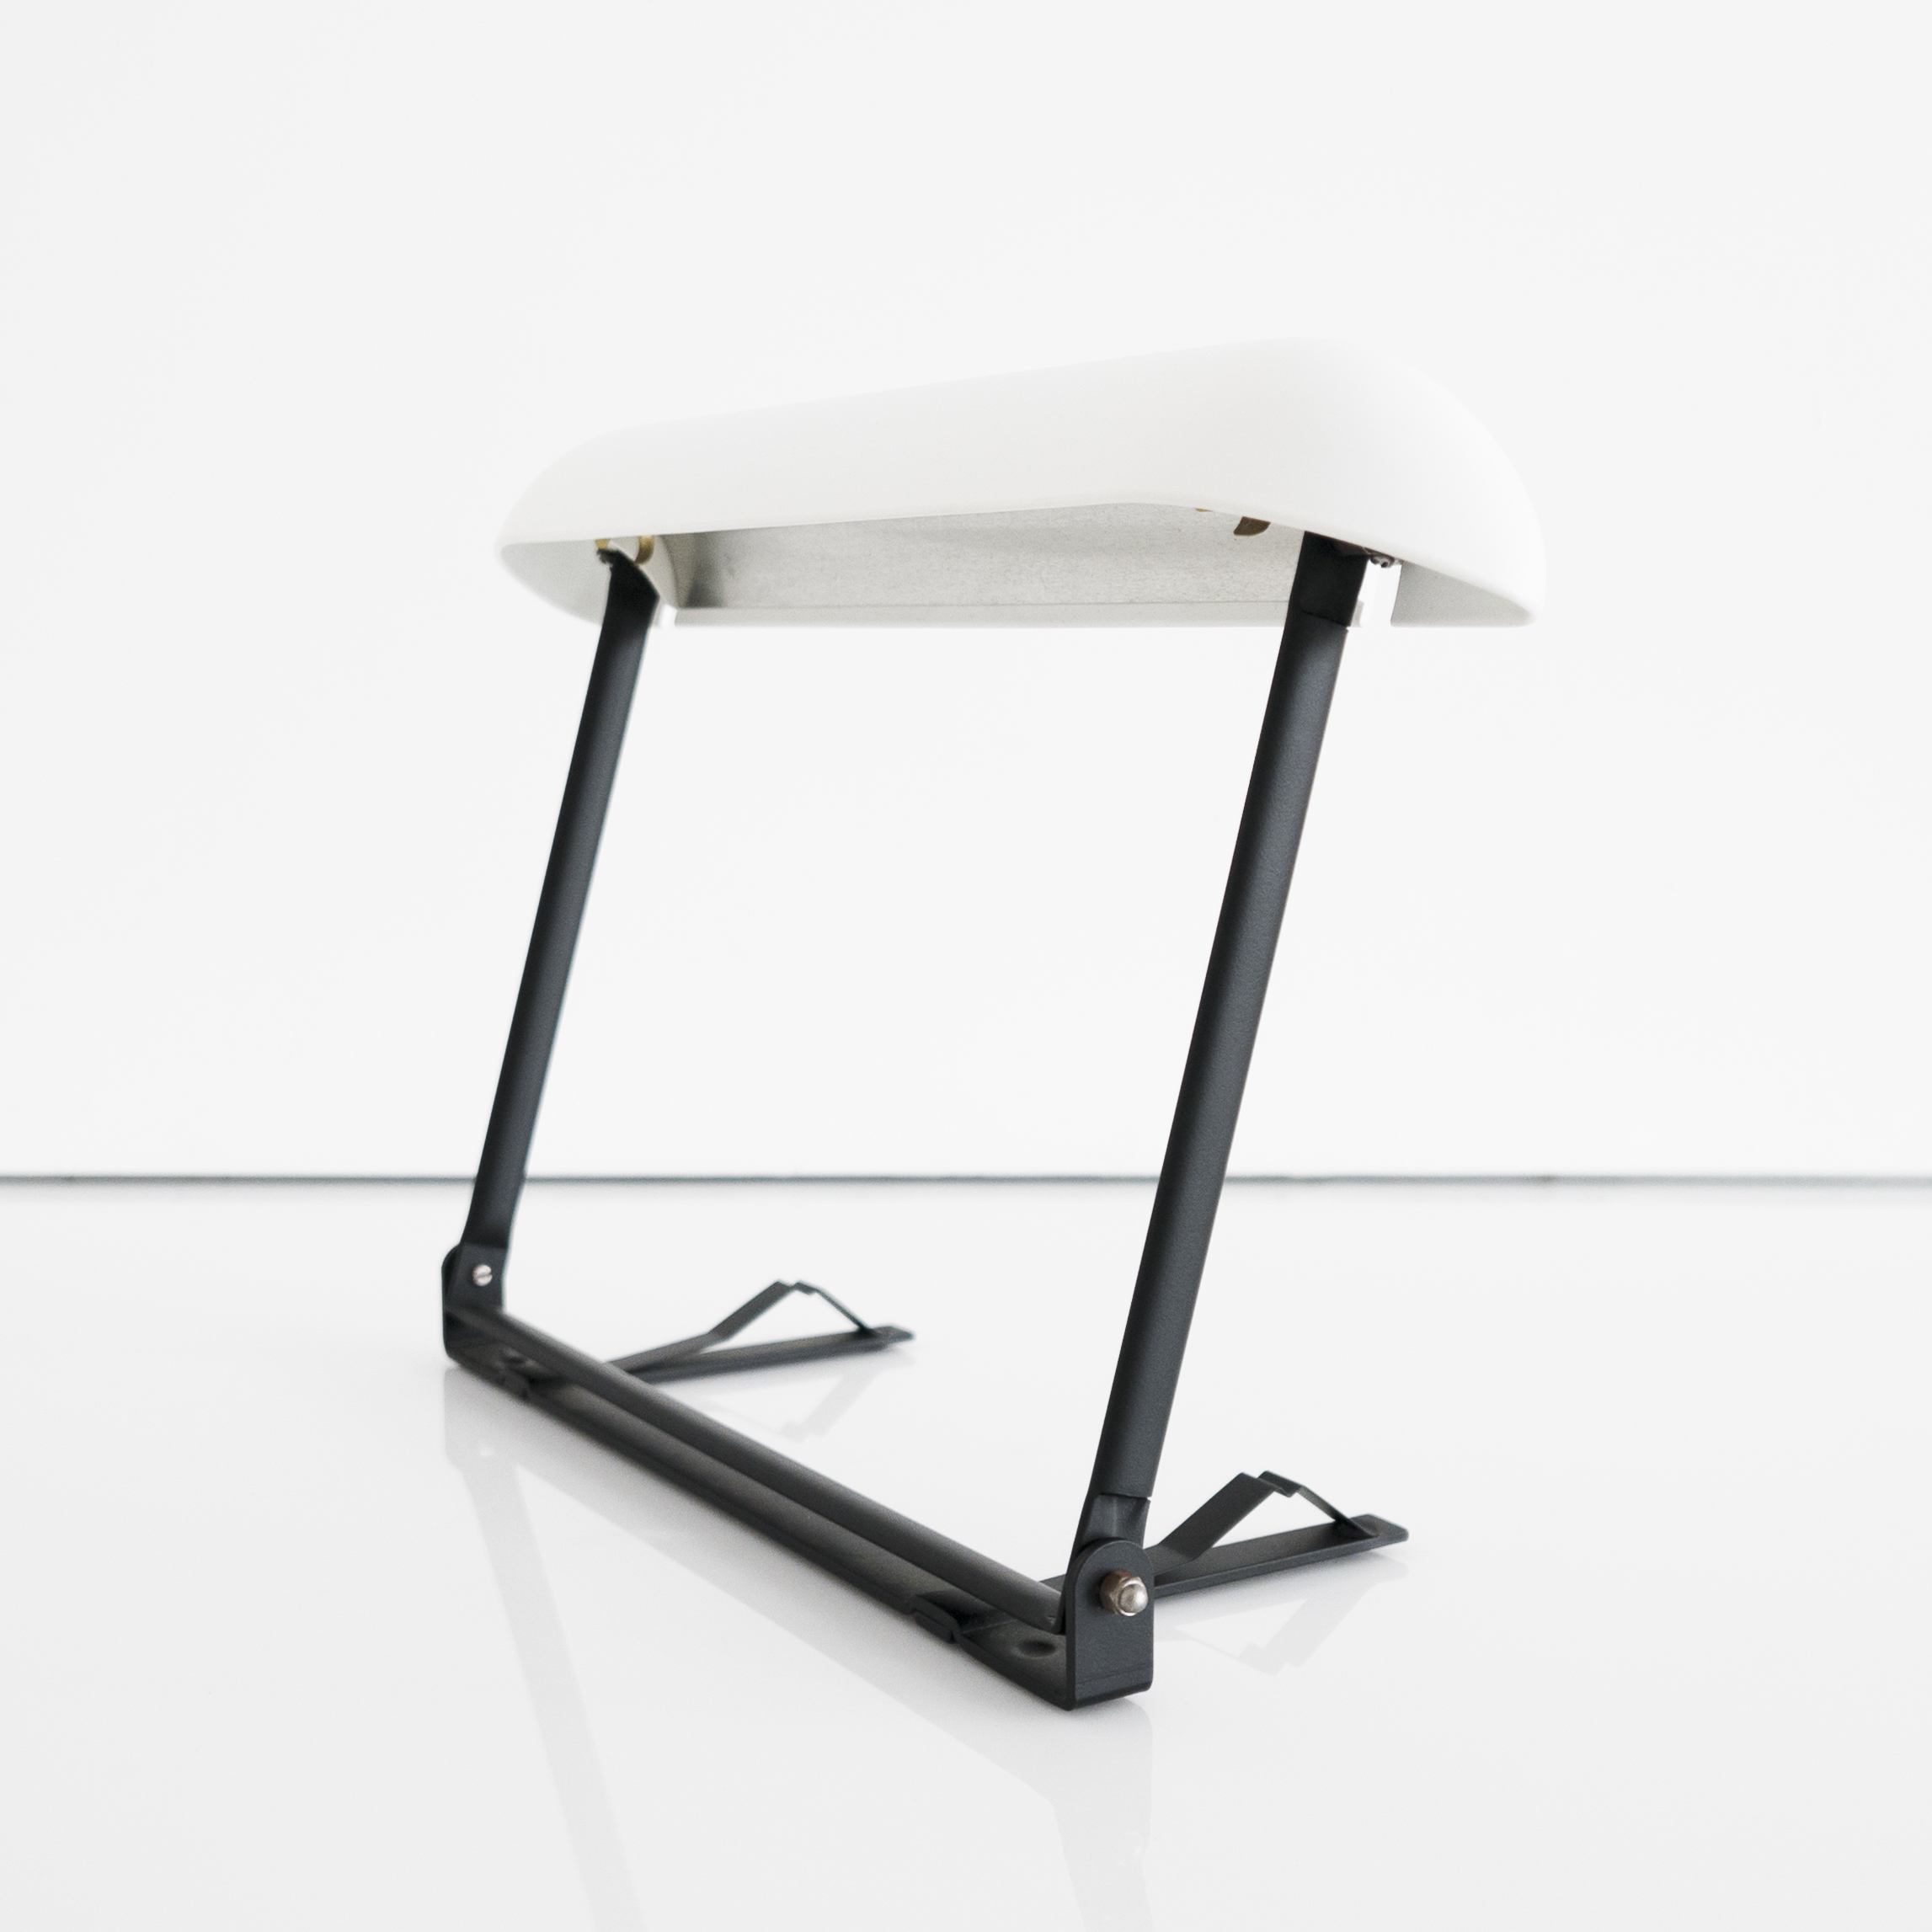 bauhaus desk lamp $2,000